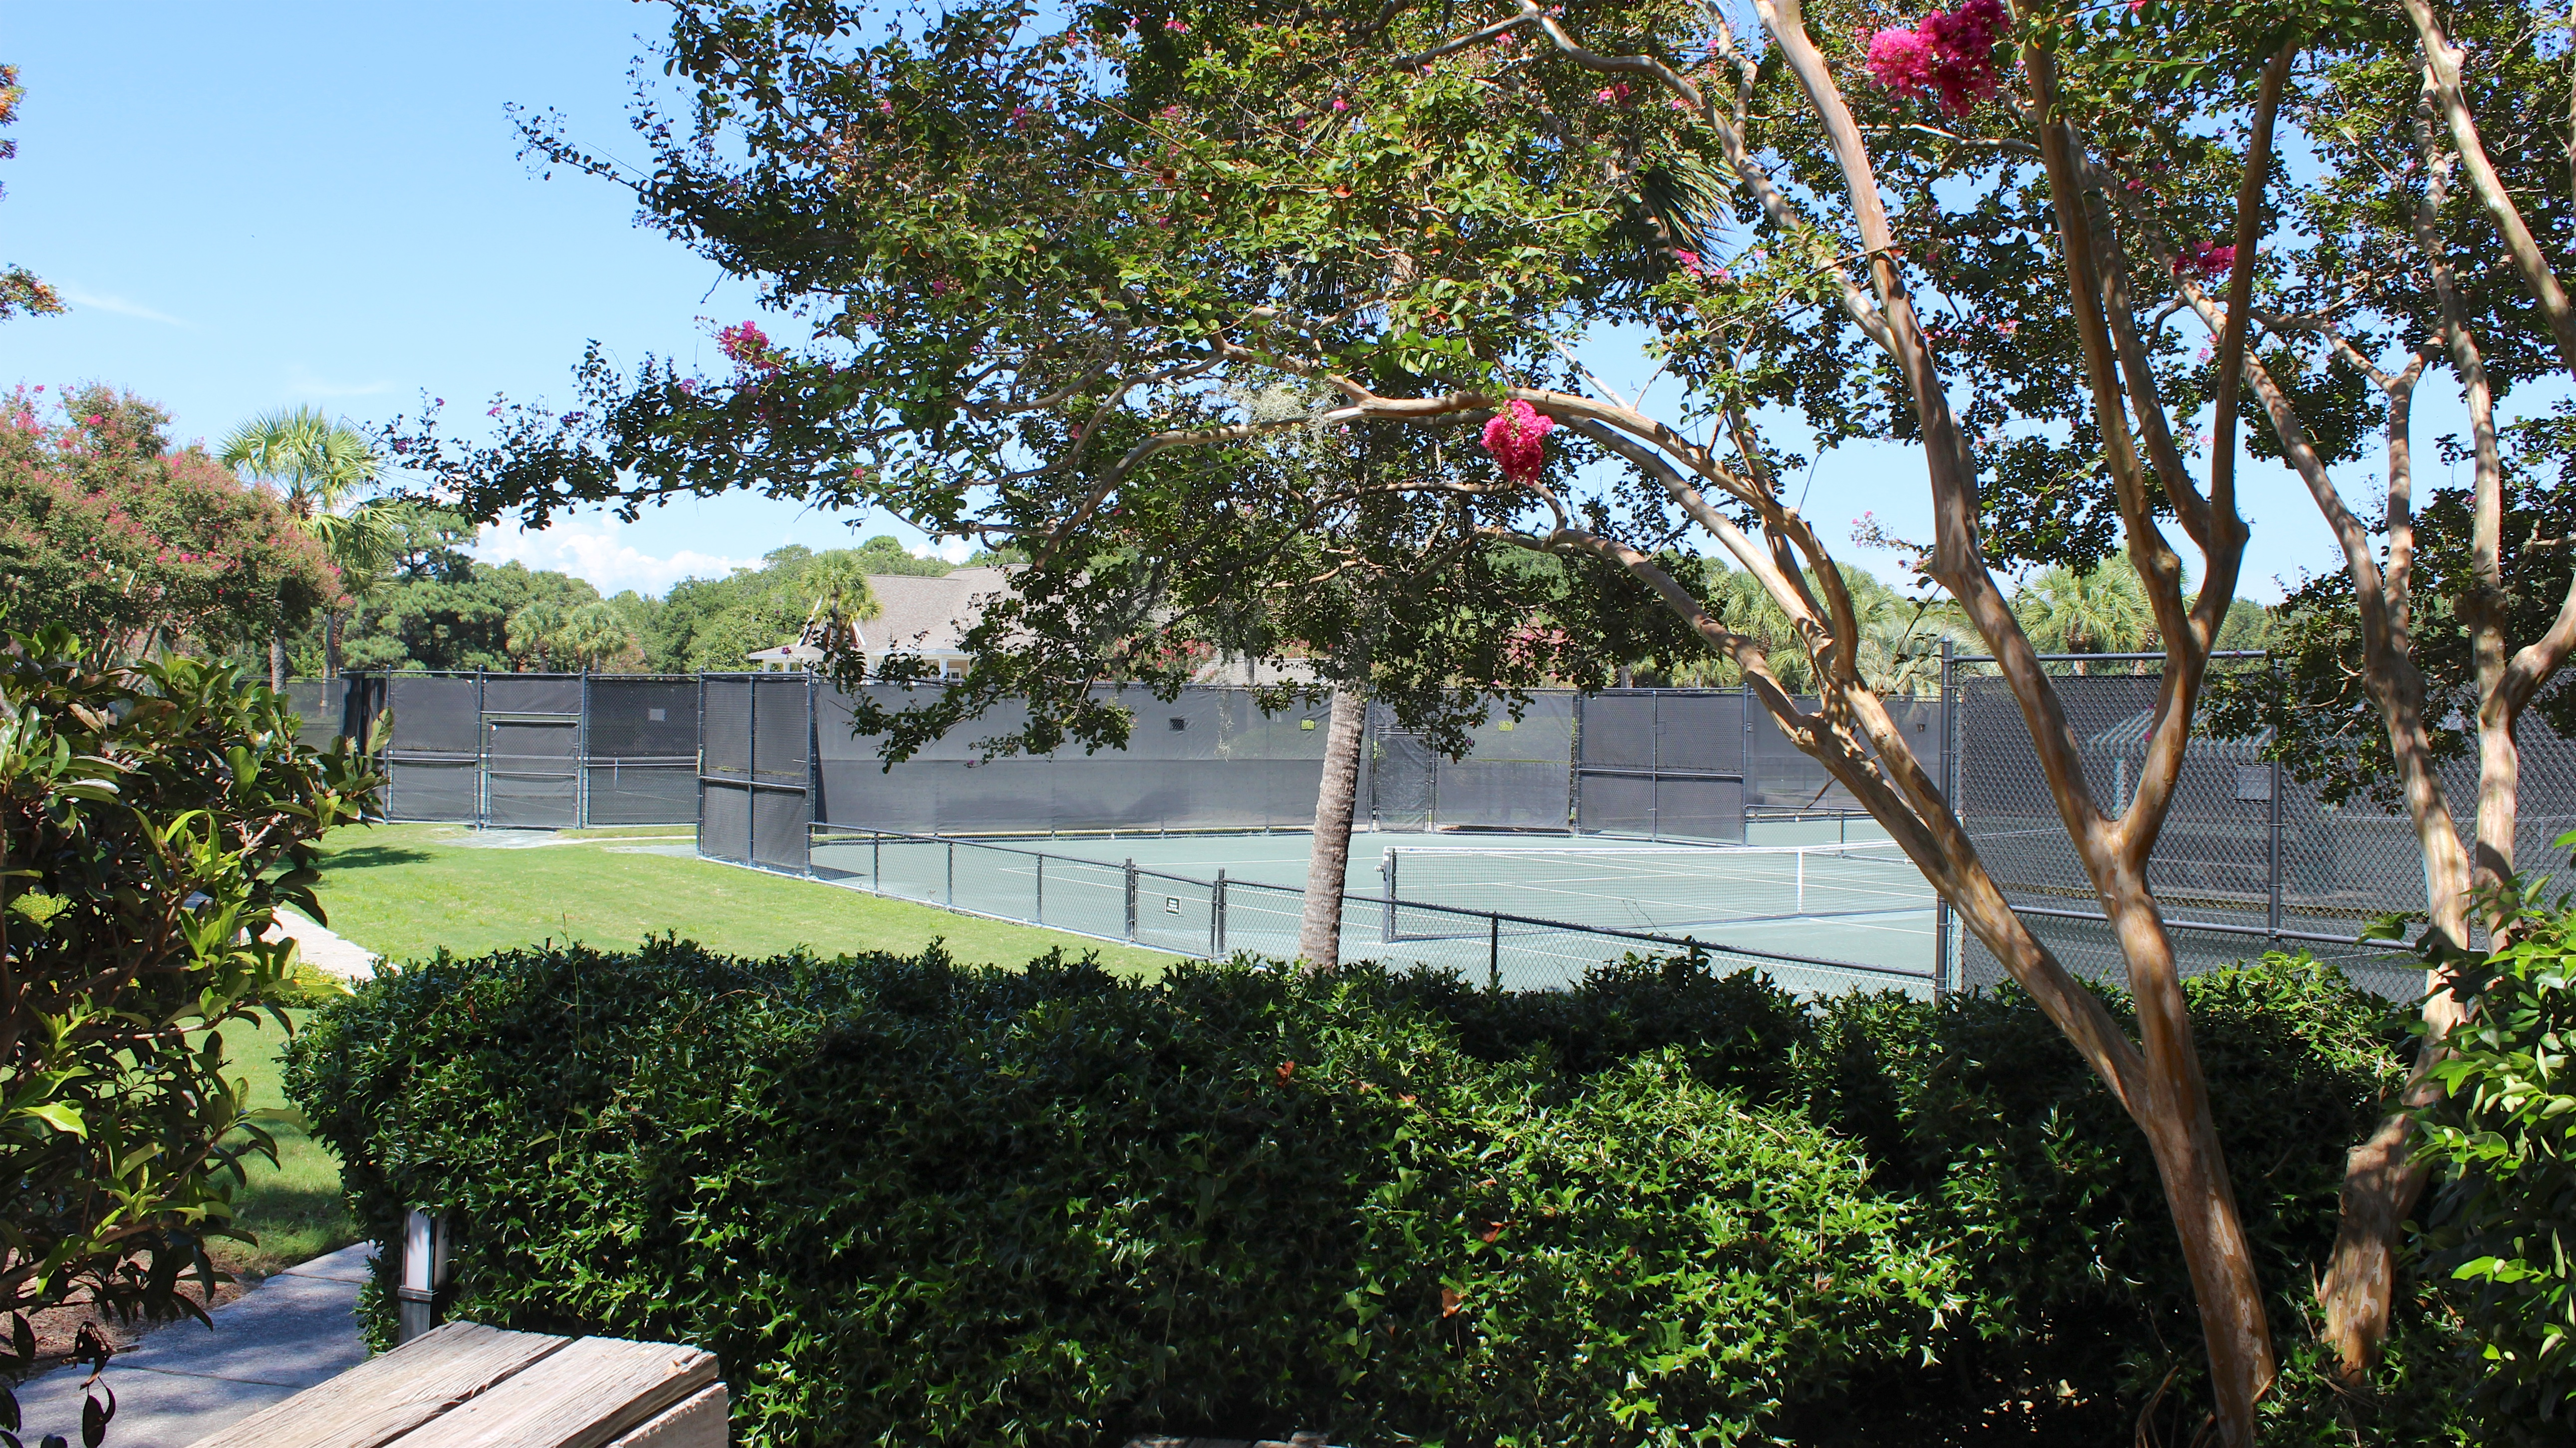 Great location overlooking the tennis courts and a short walk to the Lake House.